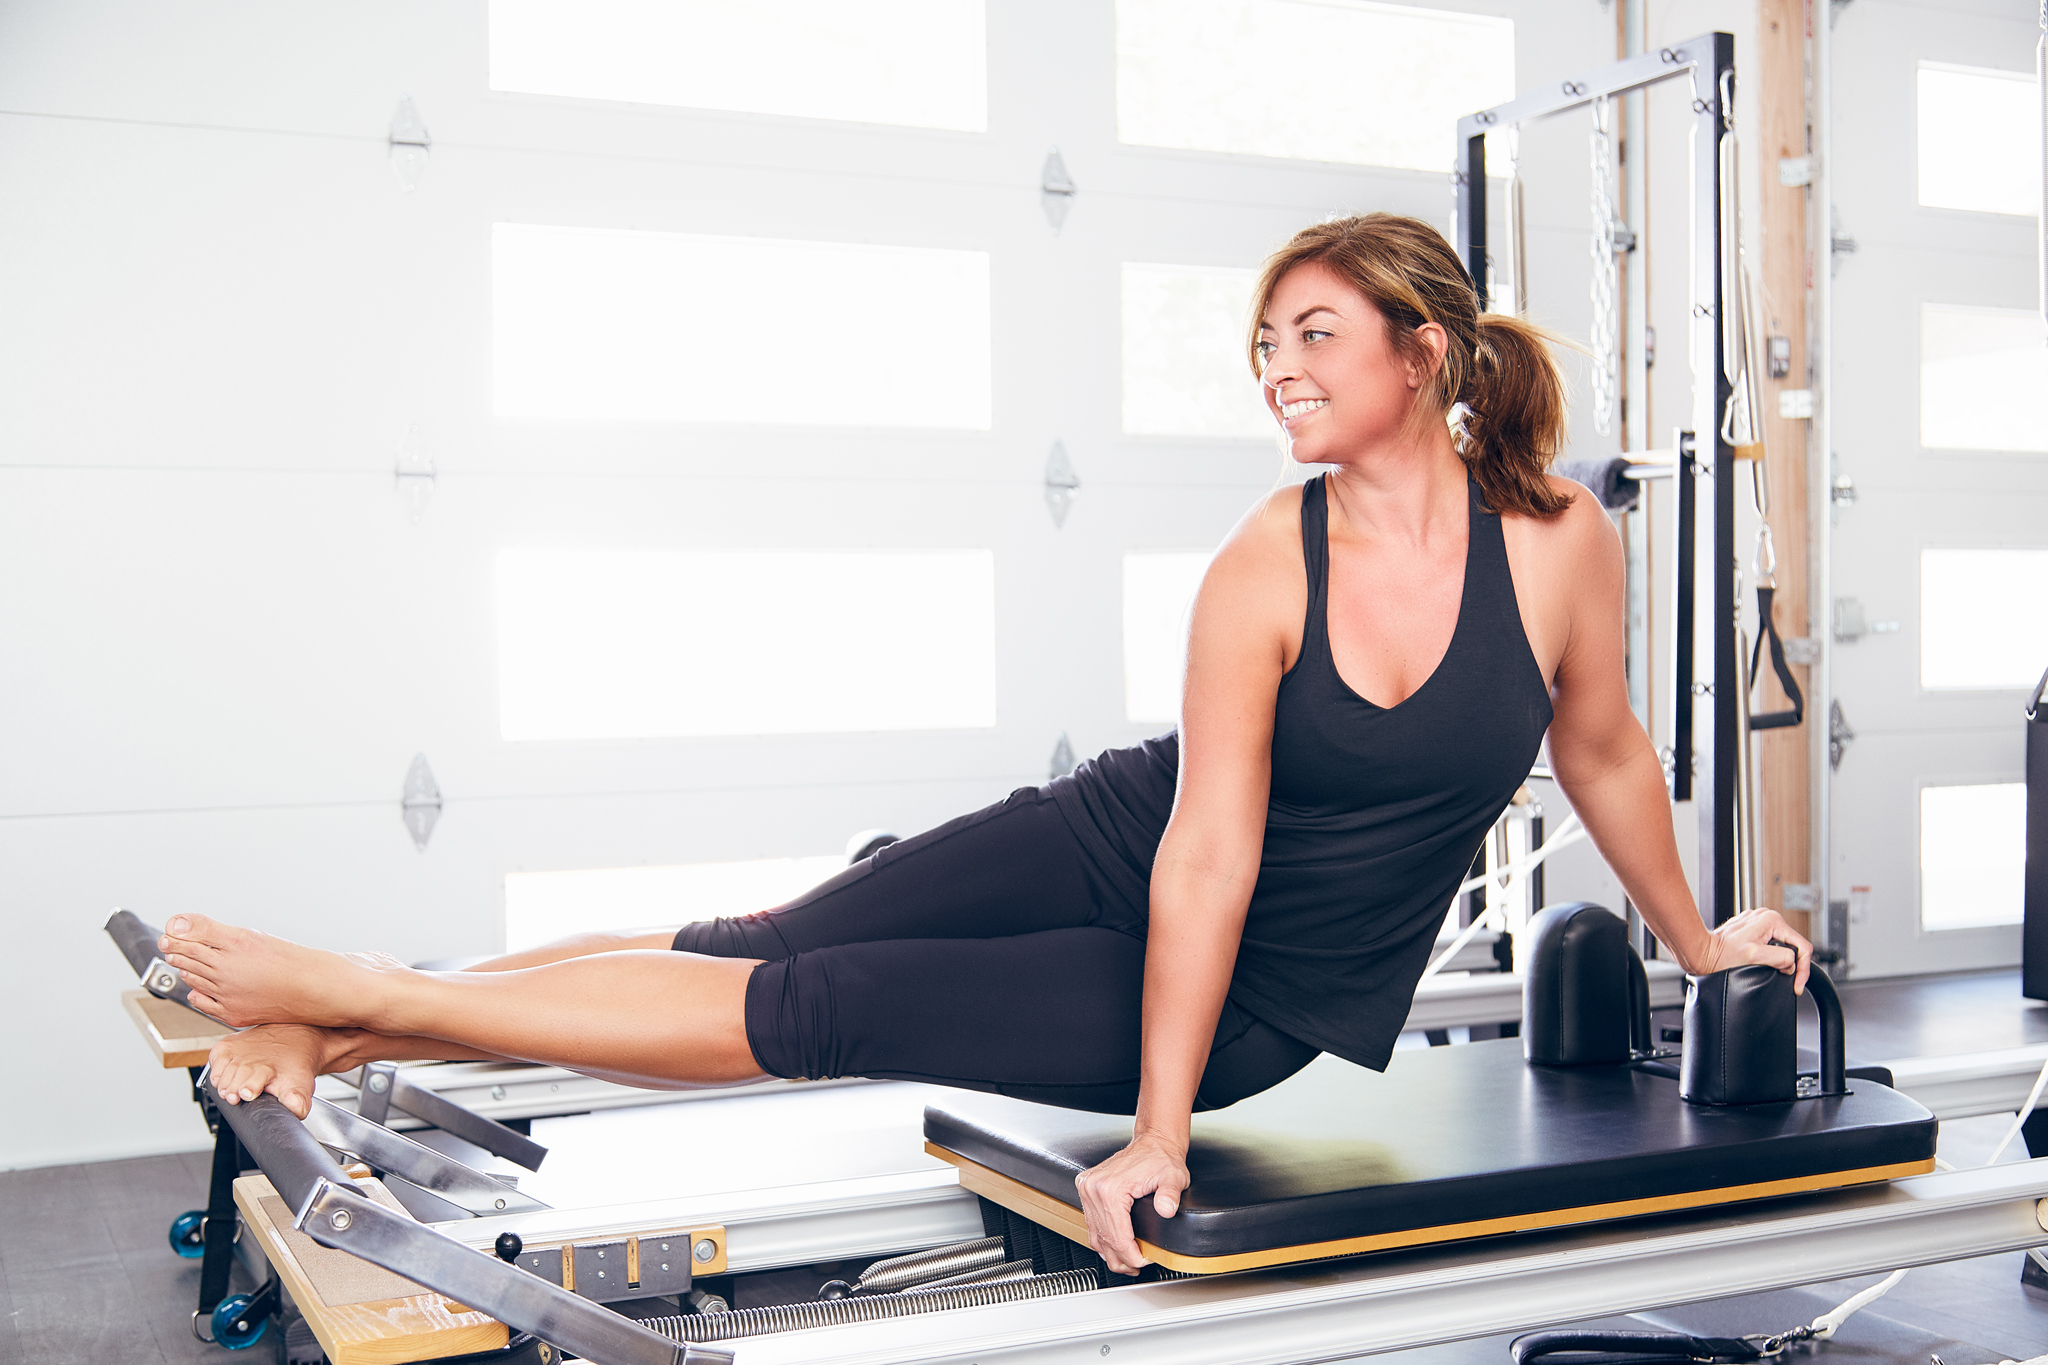 2018_Brandon-Tigrett_Commercial_Photographer_Pace-Pilates8189-00015